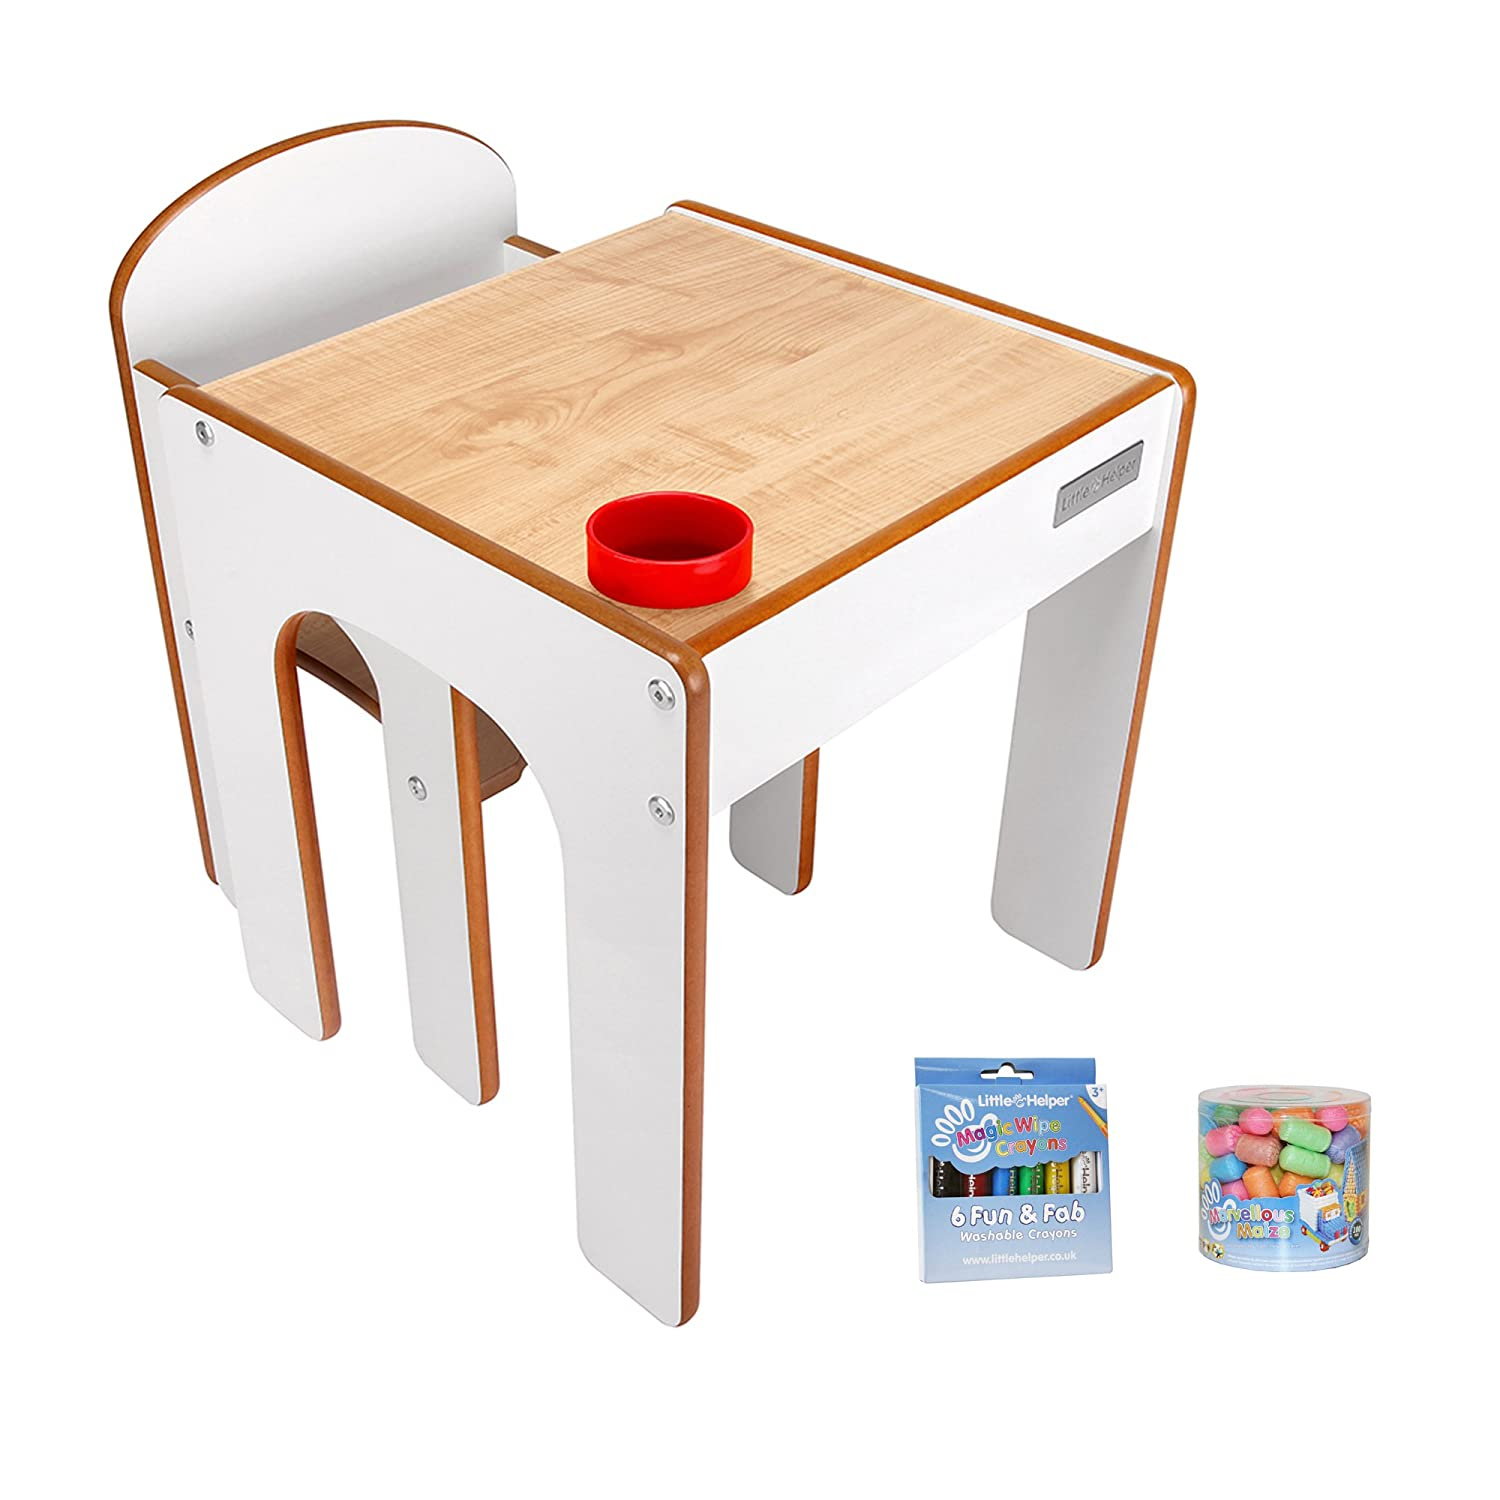 Little Helper Funstation Chalky Child Desk and Chair Set with Pen/Brush Pot, Maple/Natural, with a The Magic Cleans The Pastels and the Magic Maize Little Helper Ltd FS01M/MWC01-6/MM01-100BUN-IT